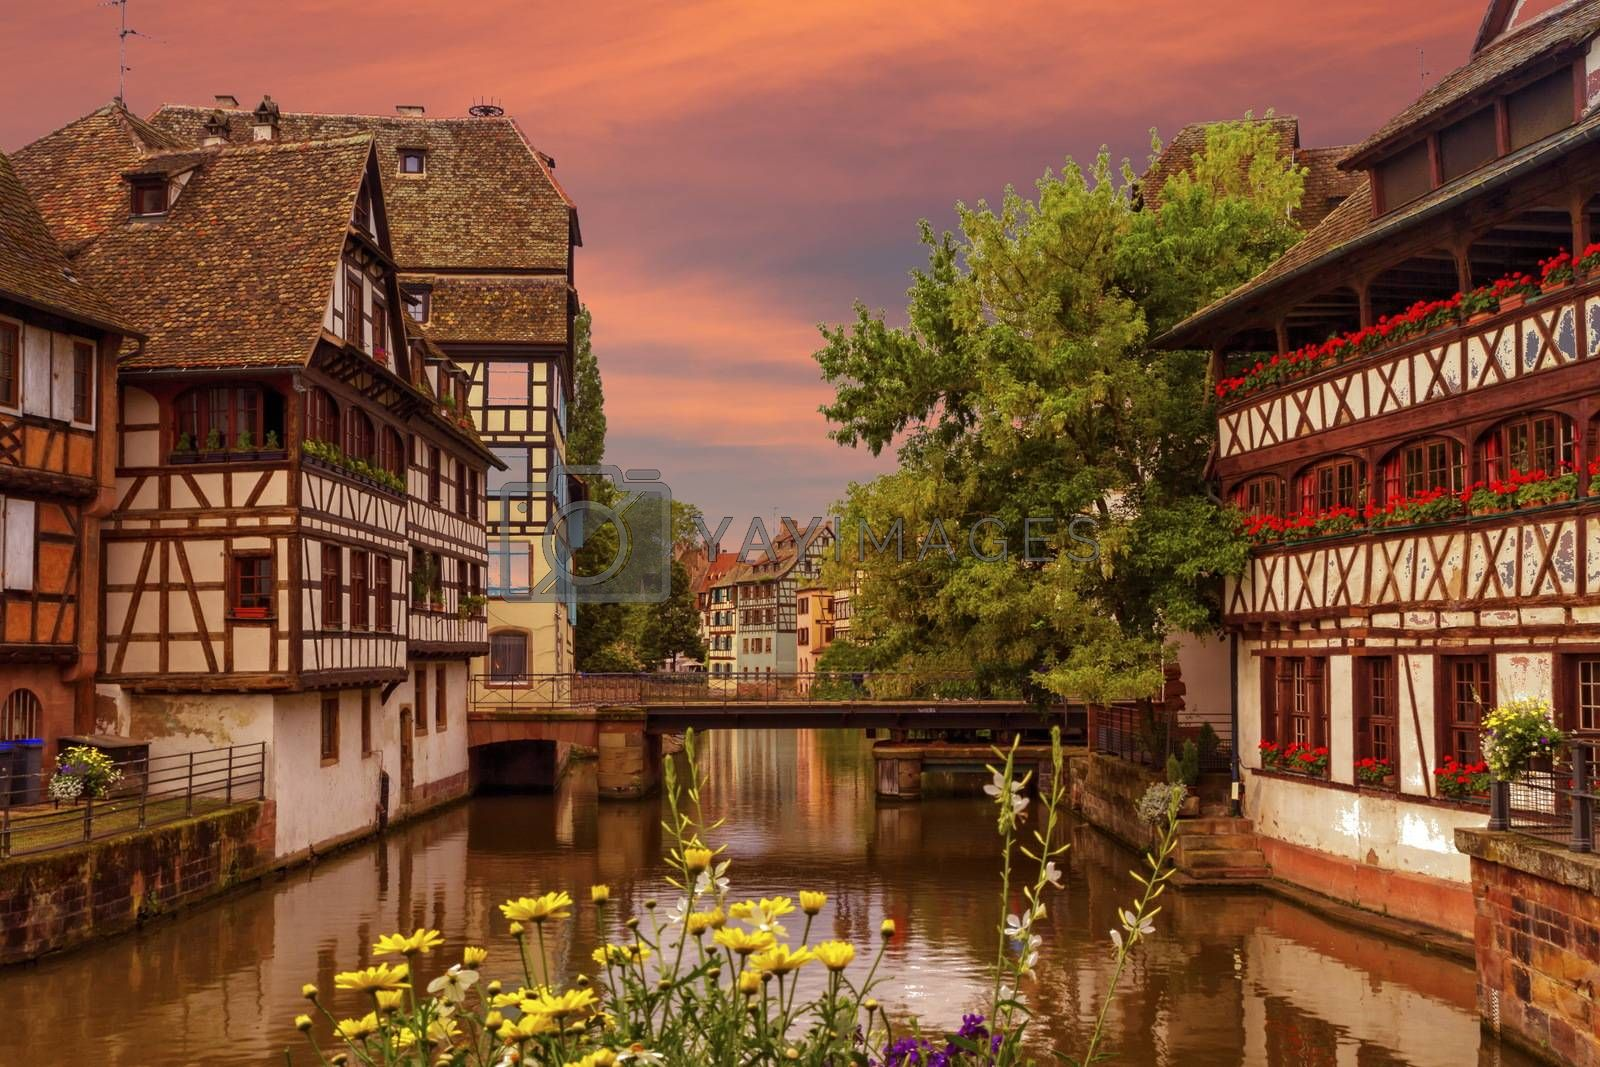 Traditional Alsatian half-timbered houses in Petite France, Strasbourg, France